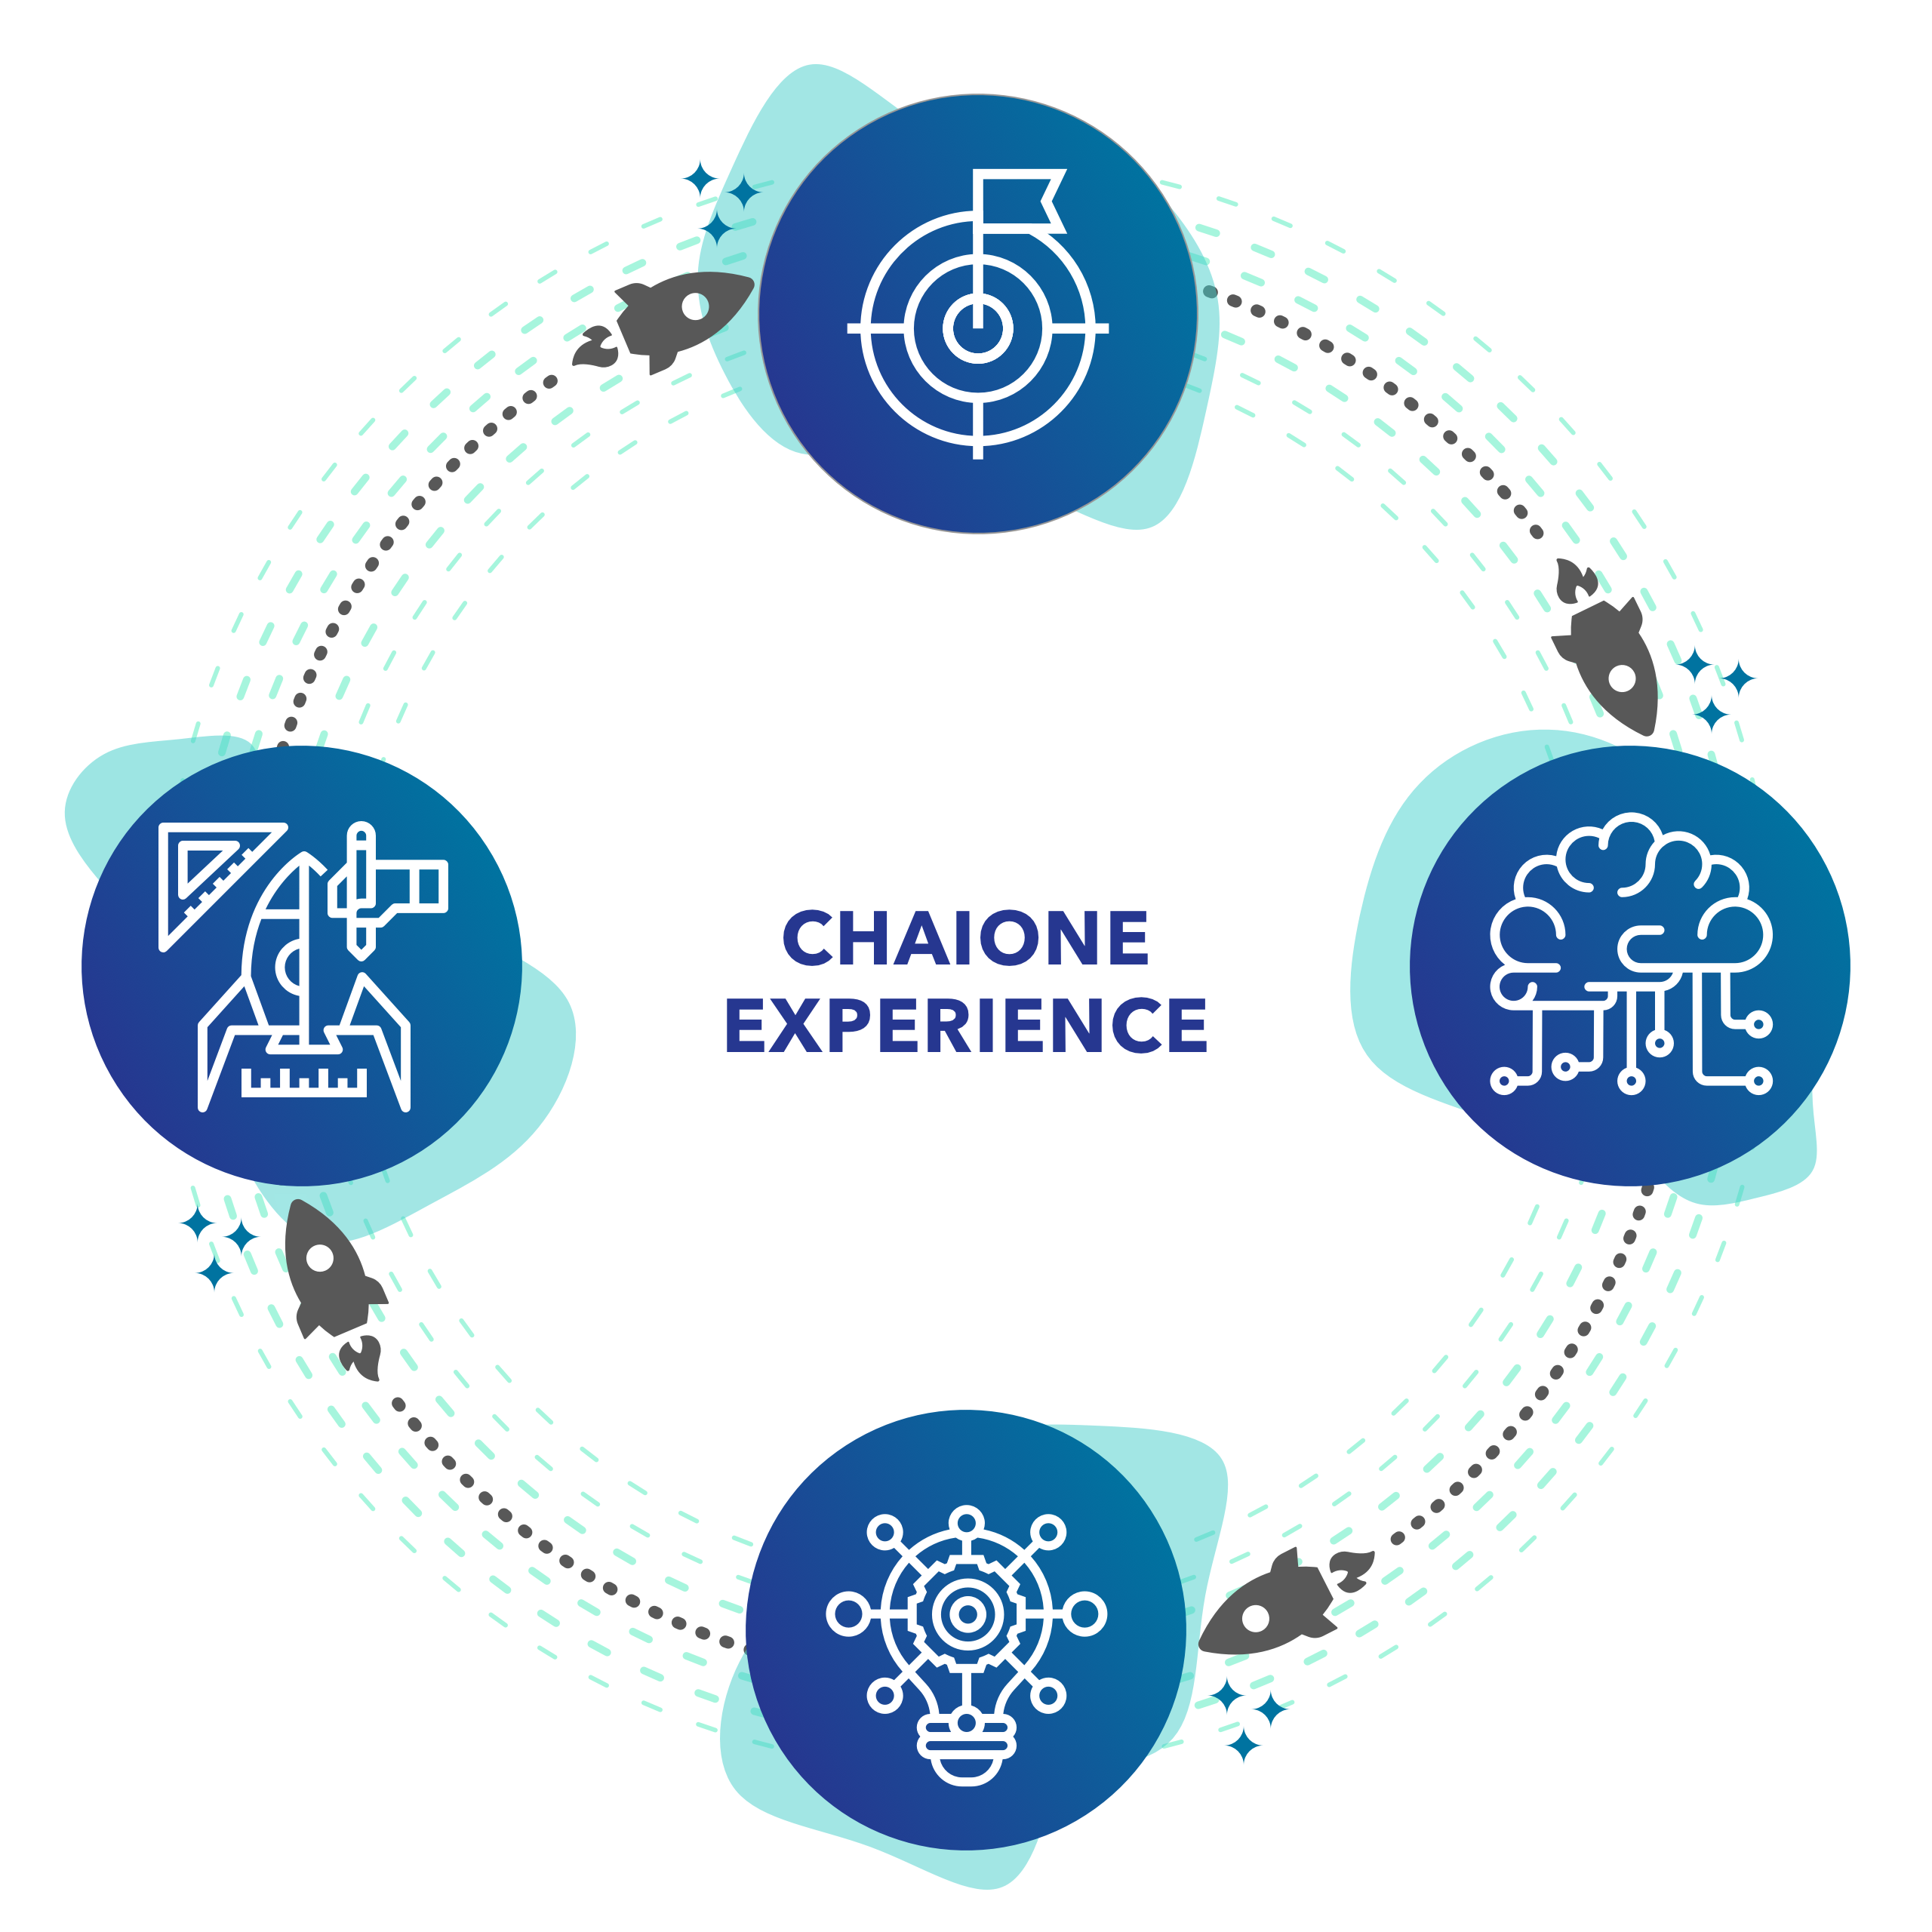 Graphic-ChaiOne Experience cyclical process